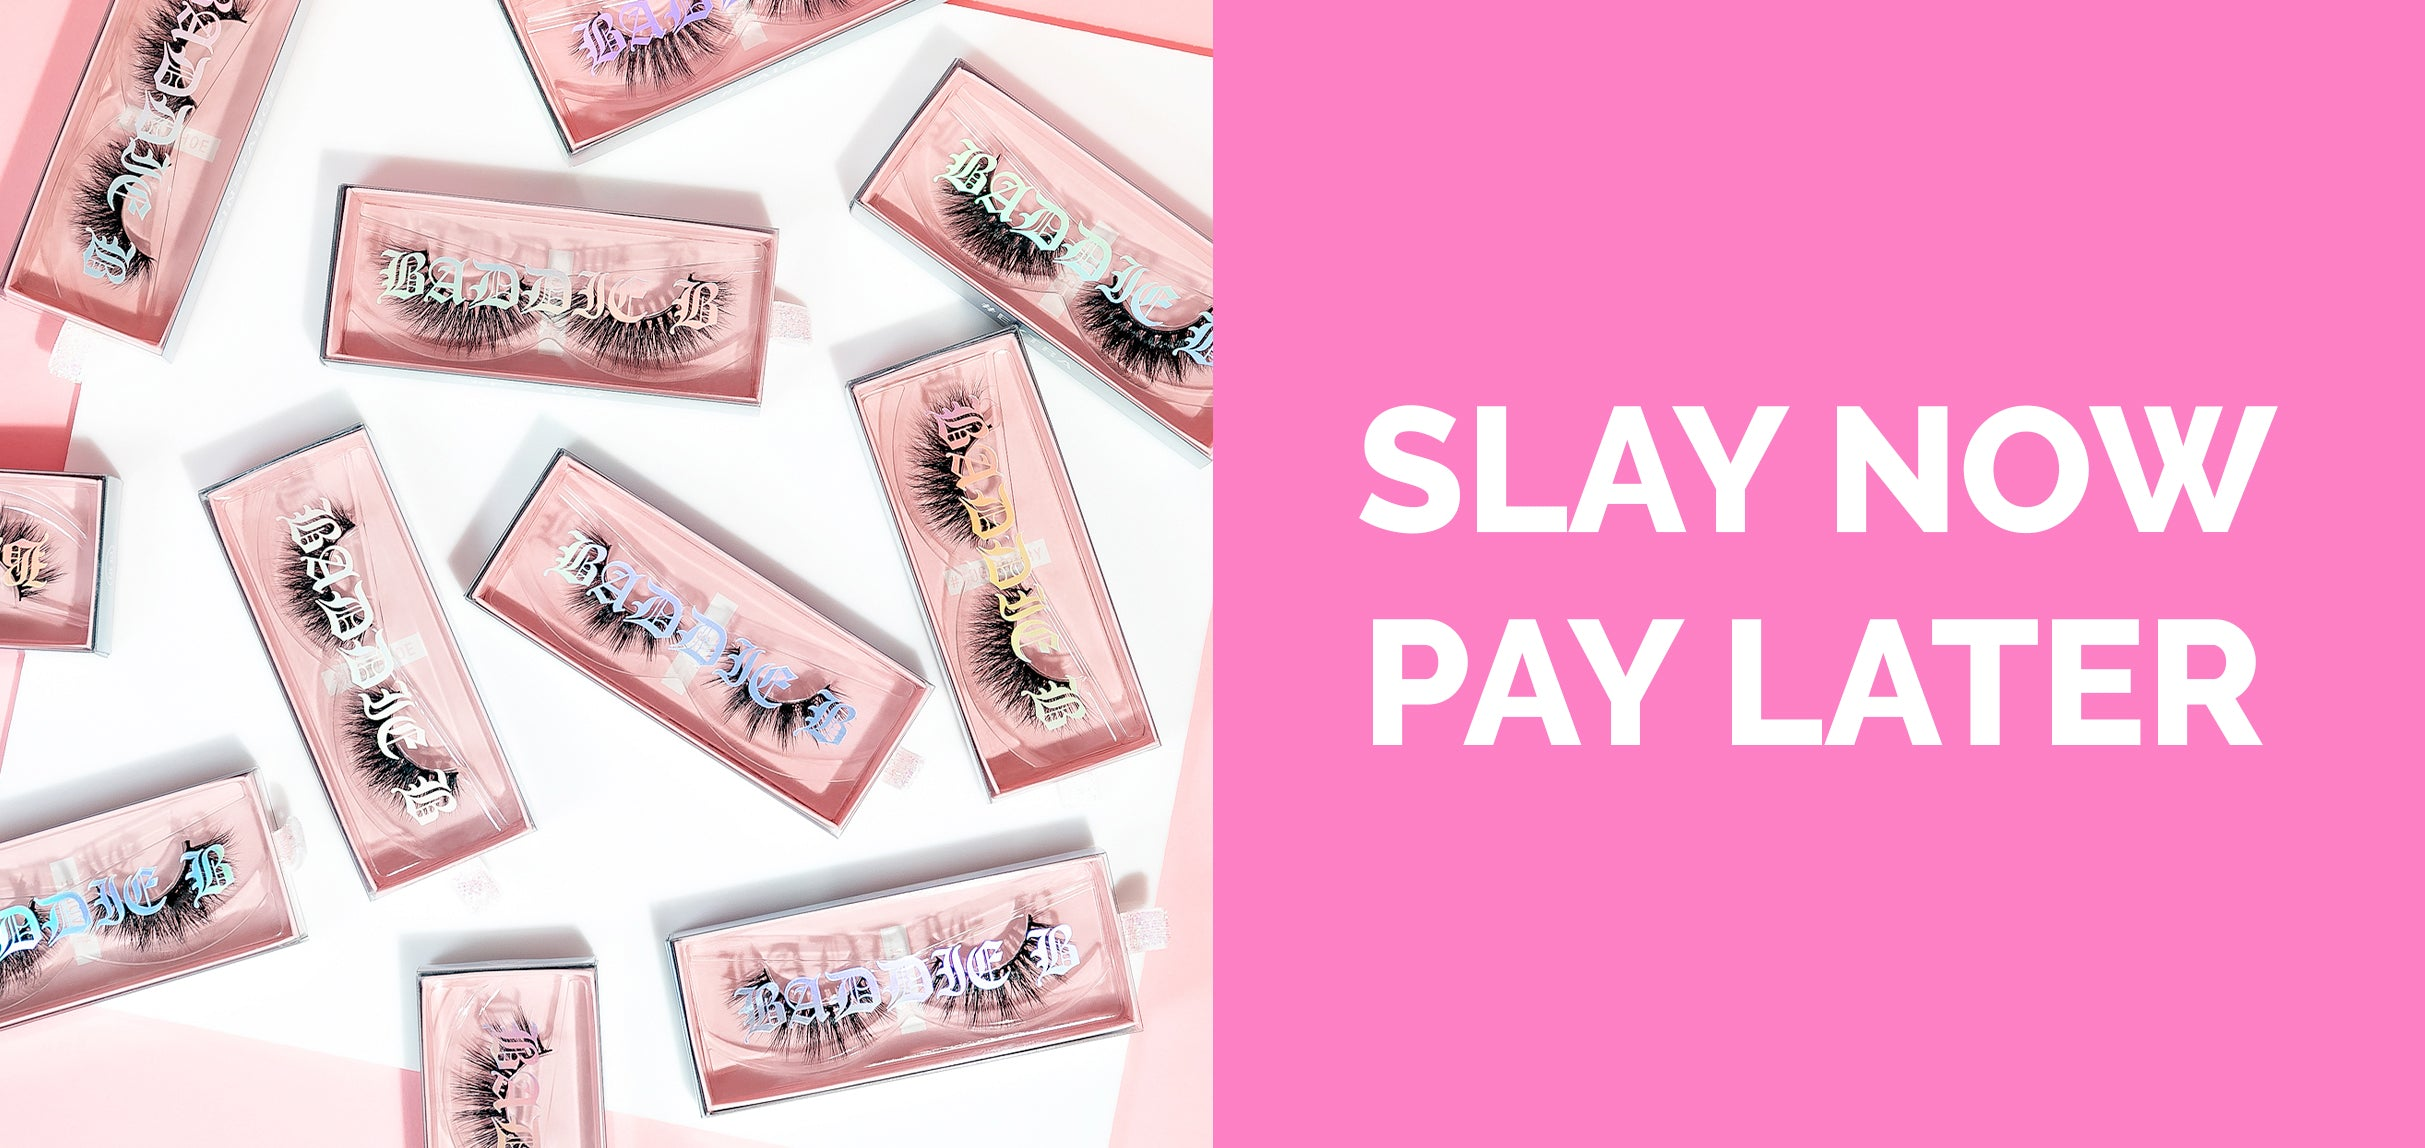 slay now pay later